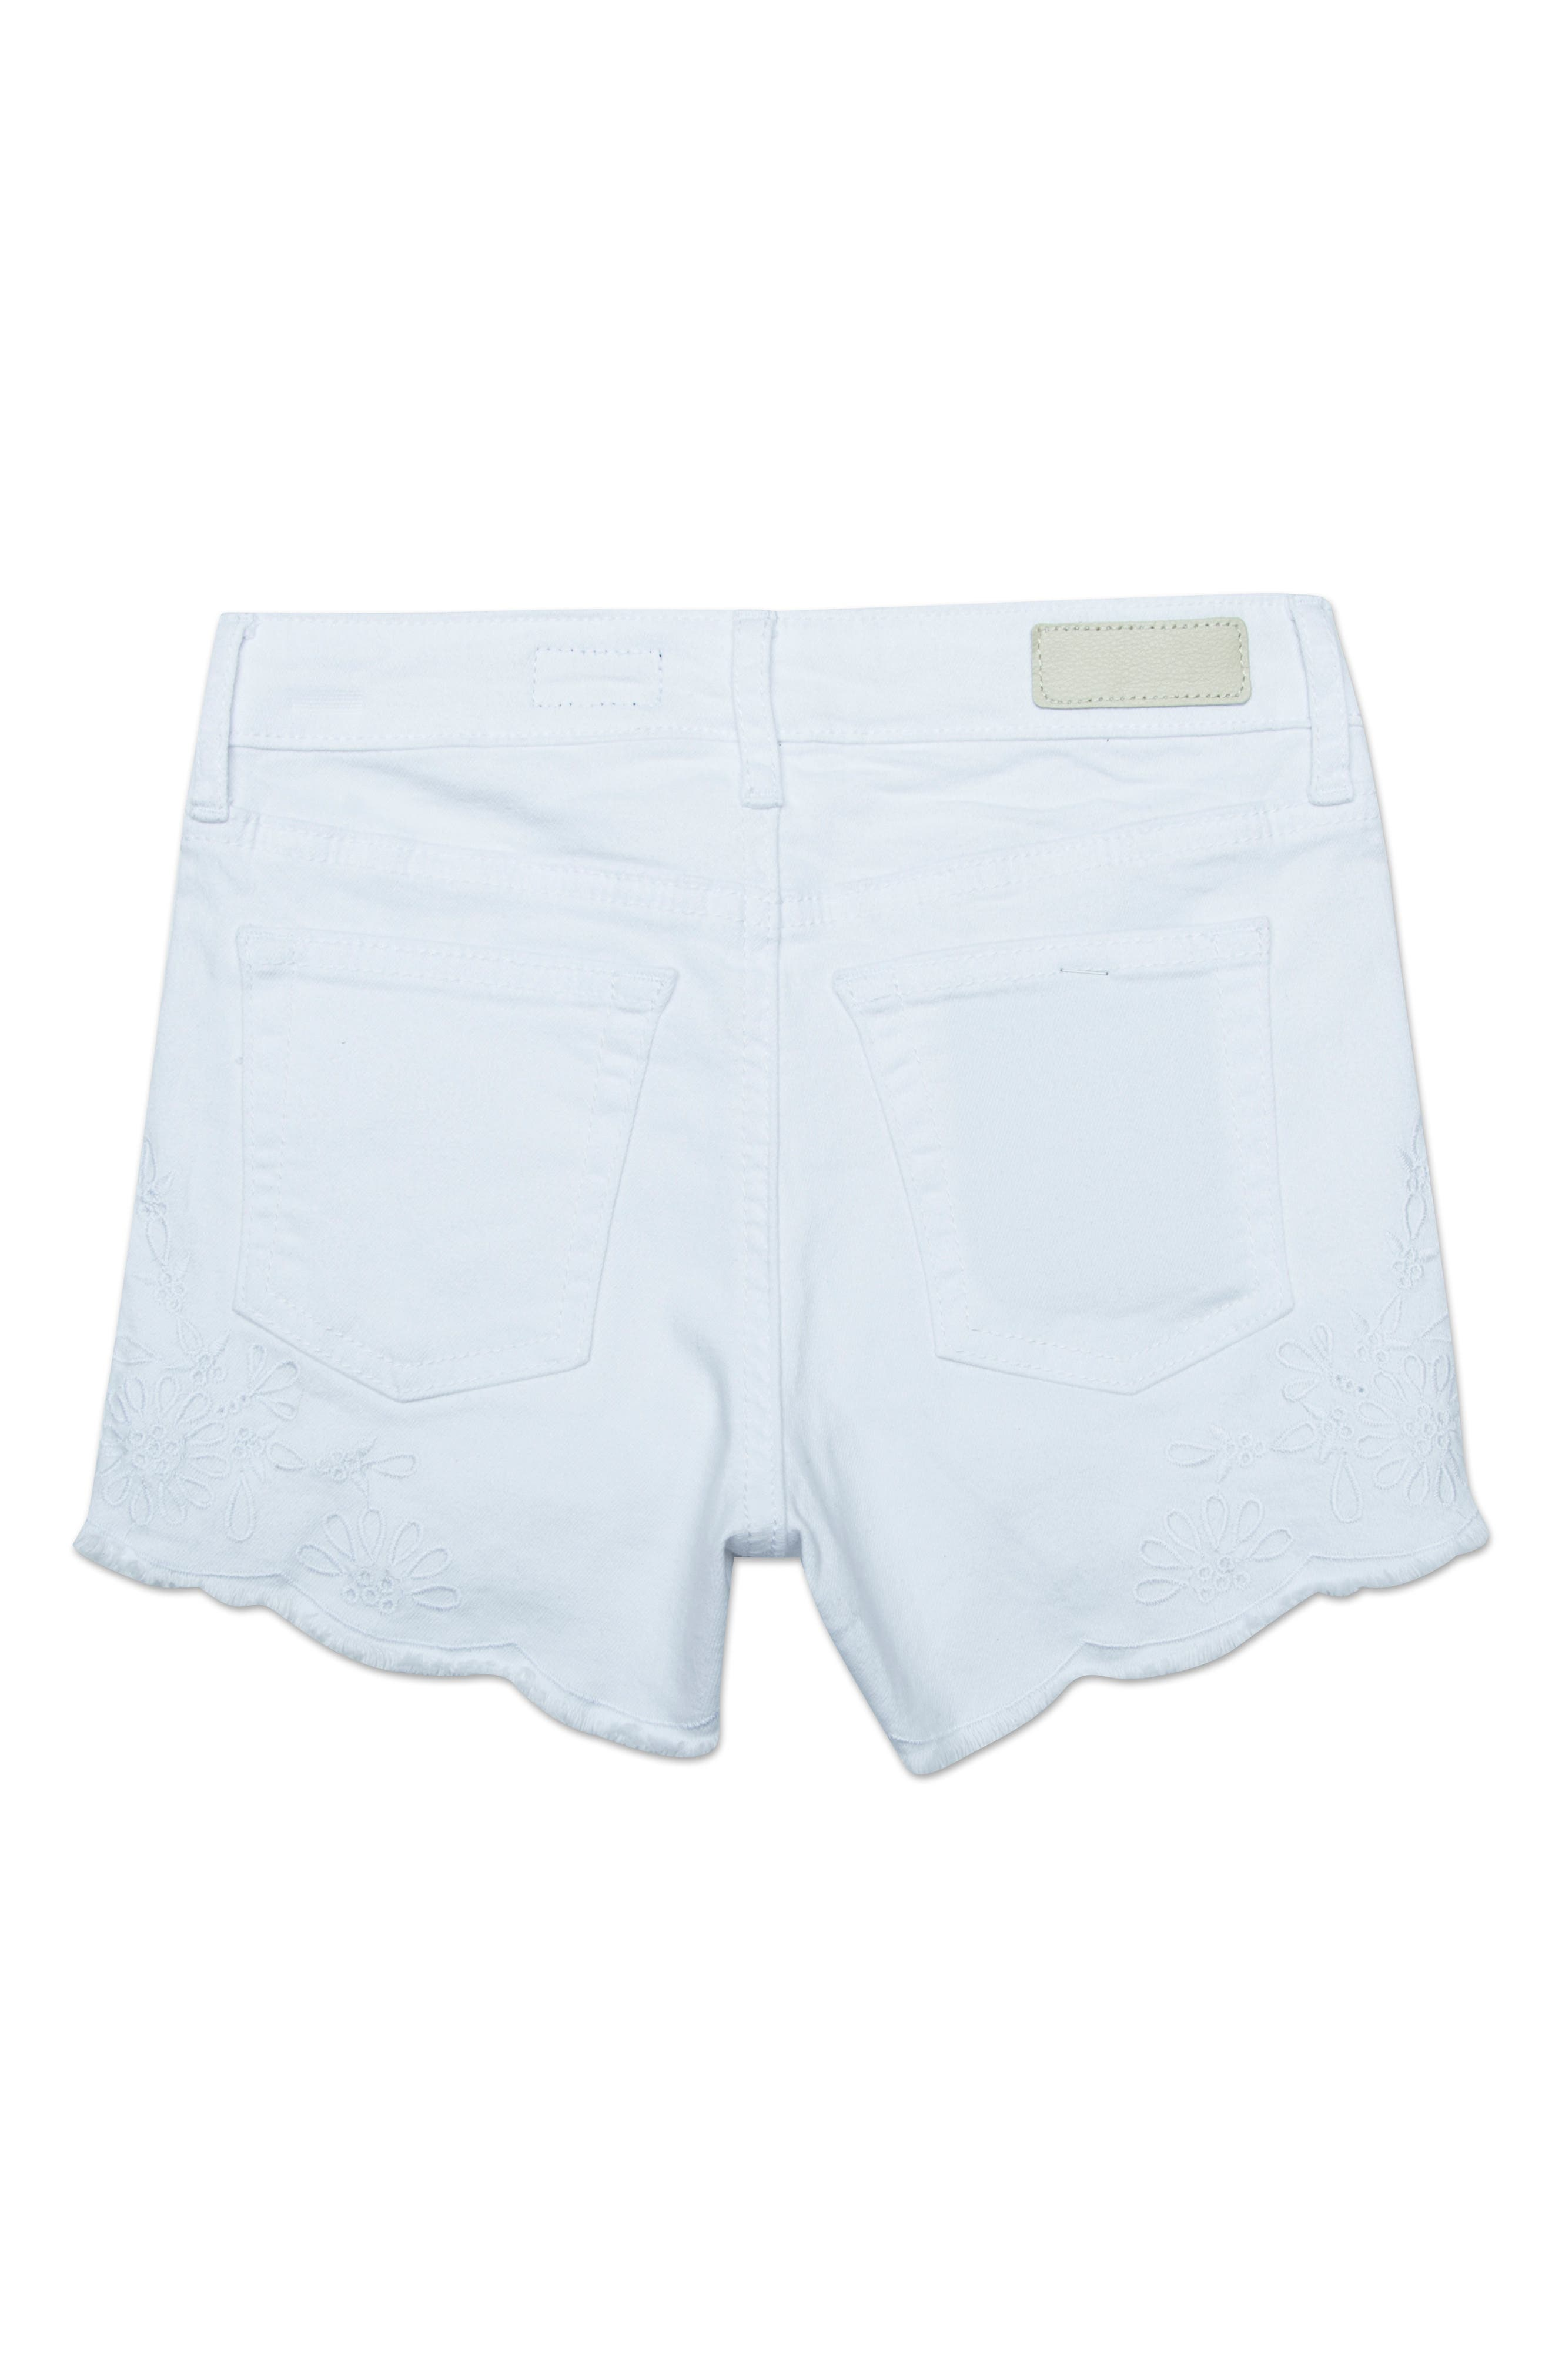 ag adriano goldschmeid kids The Brooklyn Scallop Denim Shorts,                             Alternate thumbnail 2, color,                             WHITE/ COCONUT